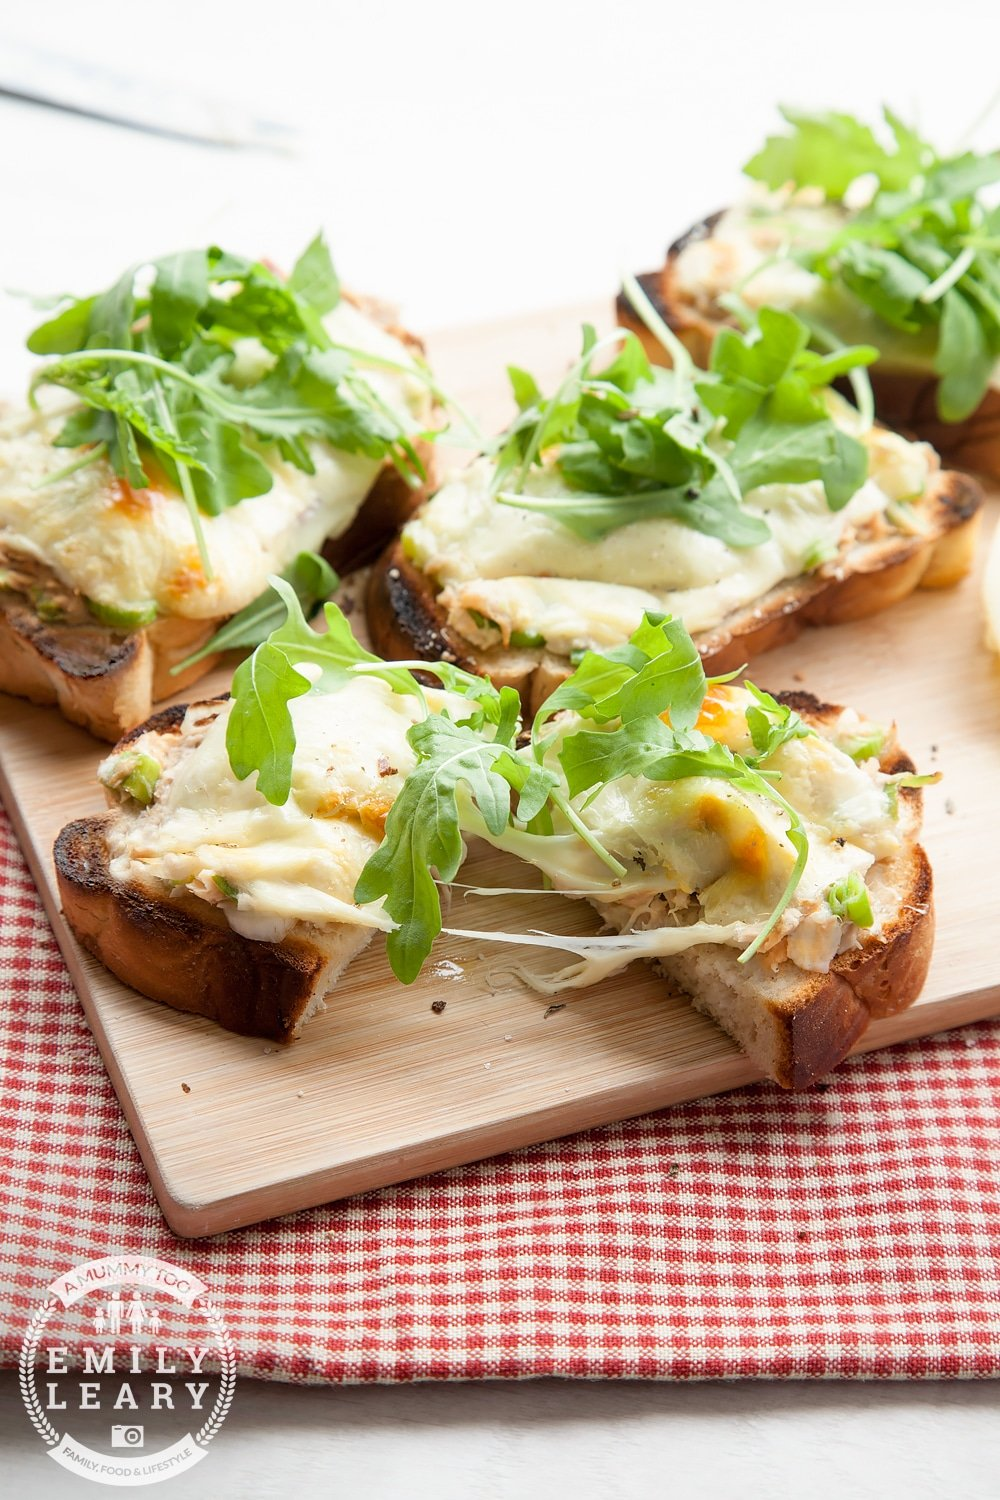 The tuna melt is a classic, but it can be loaded with fat. Here's a healthier version - a reduced fat tuna melt made with light mayo, spring onions, Swiss cheese, seasoning and a topping of fresh rocket (arugula). Why not make it this week?